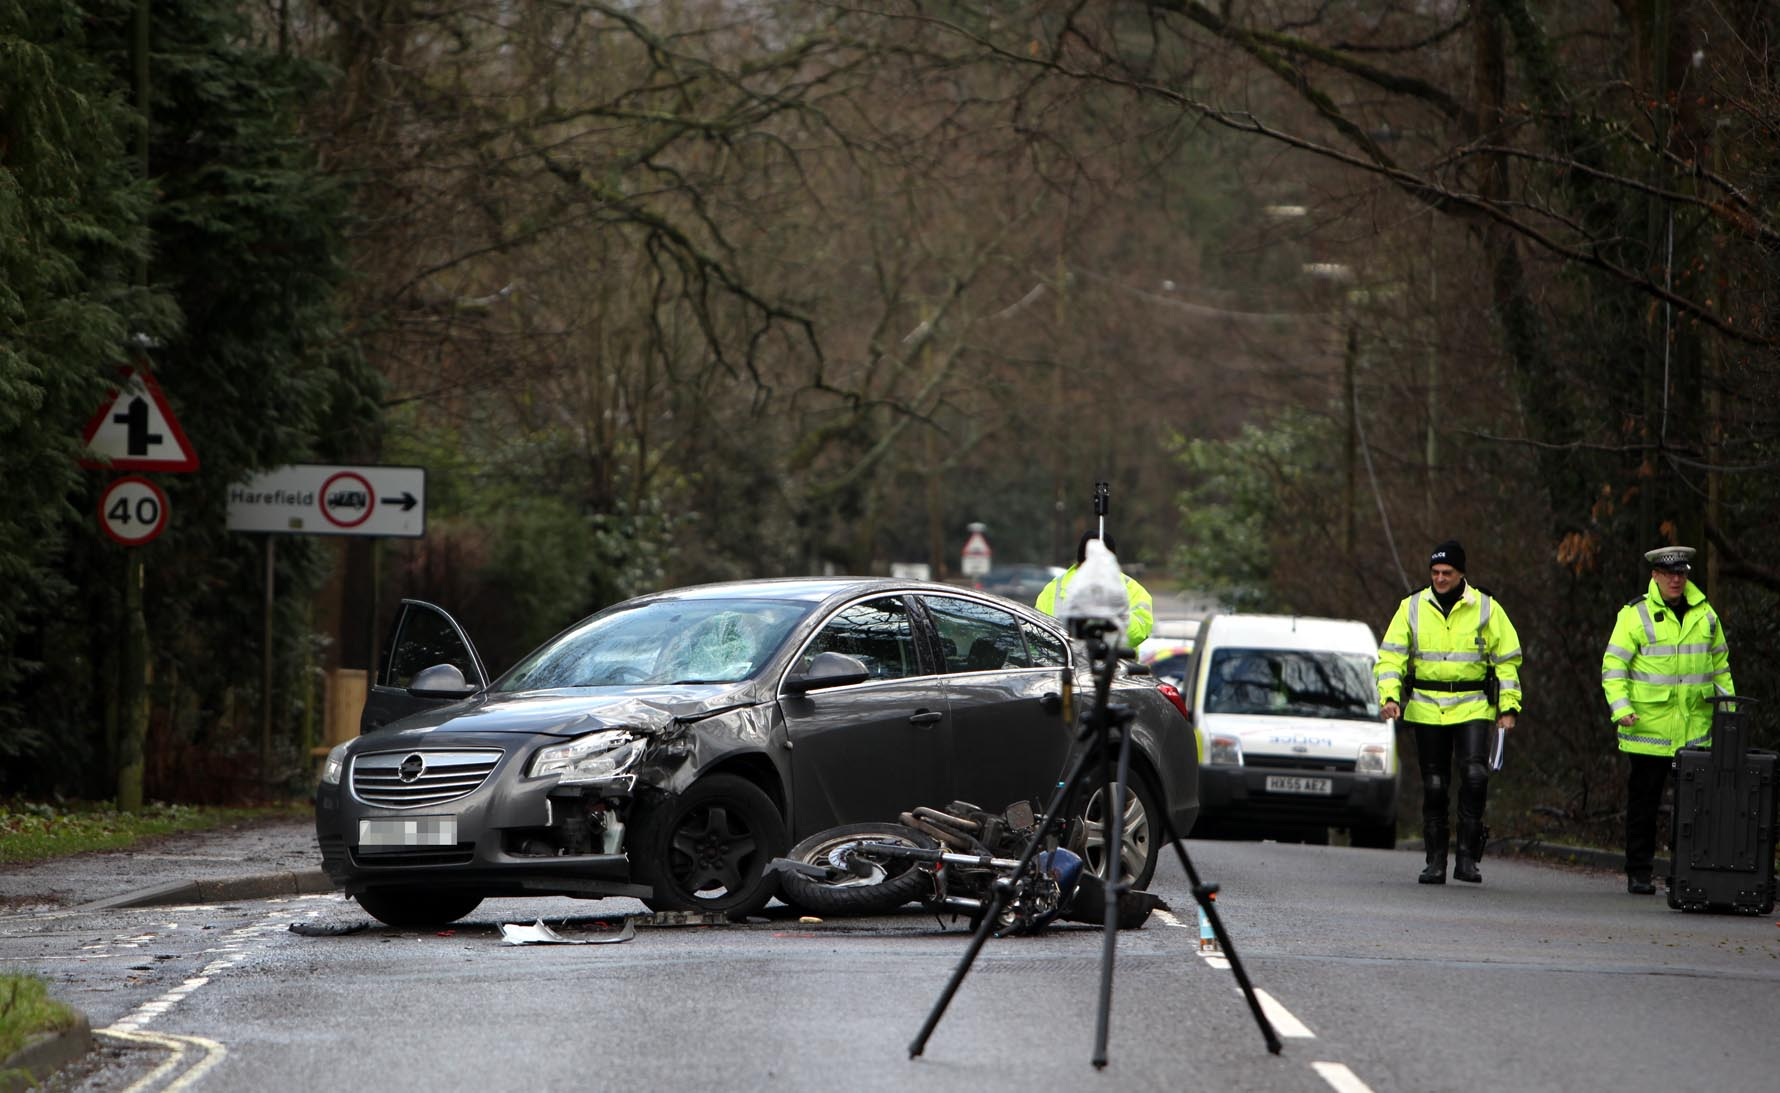 Scene of fatal motocycle crash at junction of Moorhill Road and Southern Road in West End